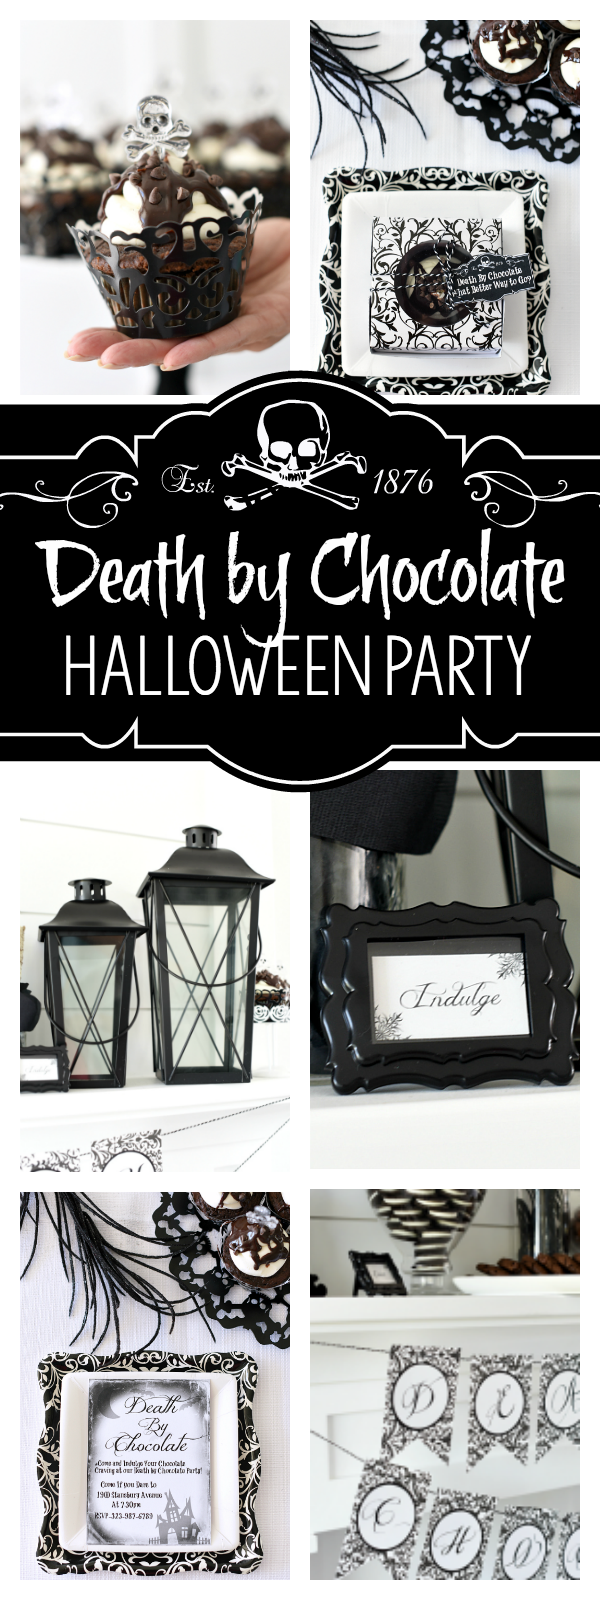 Death by Chocolate Halloween Party Ideas